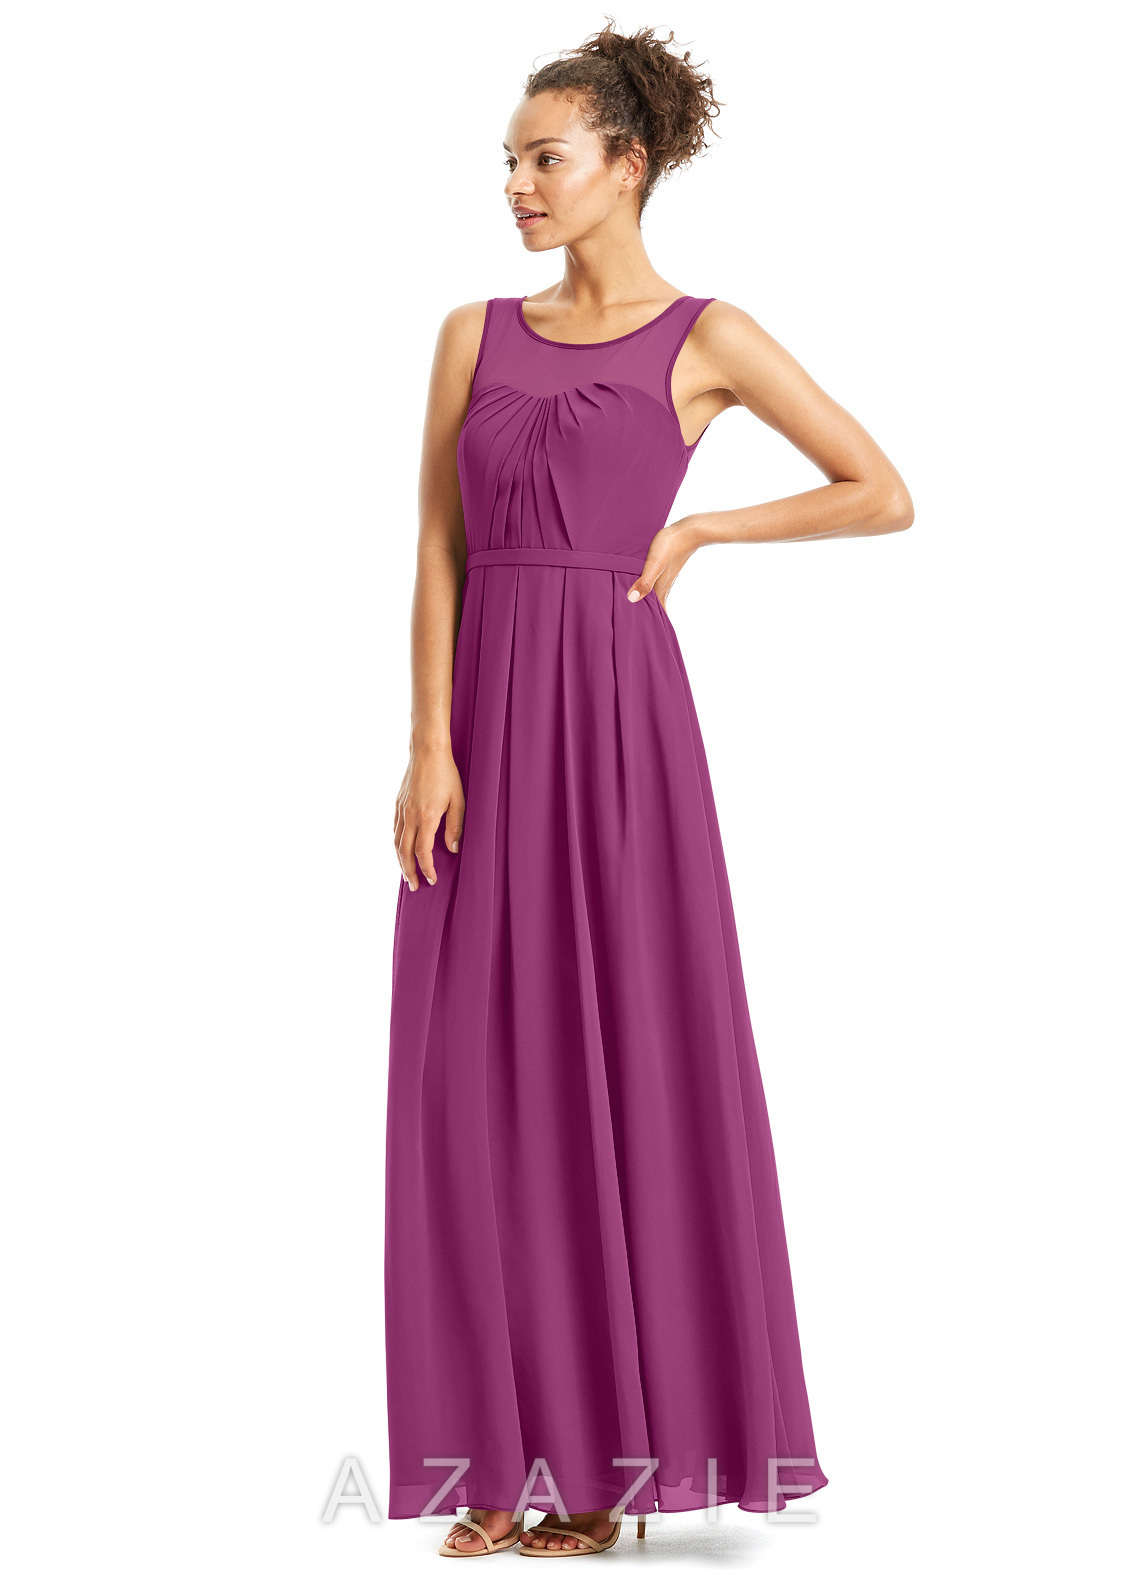 Azazie Ambrosia Bridesmaid Dress | Azazie